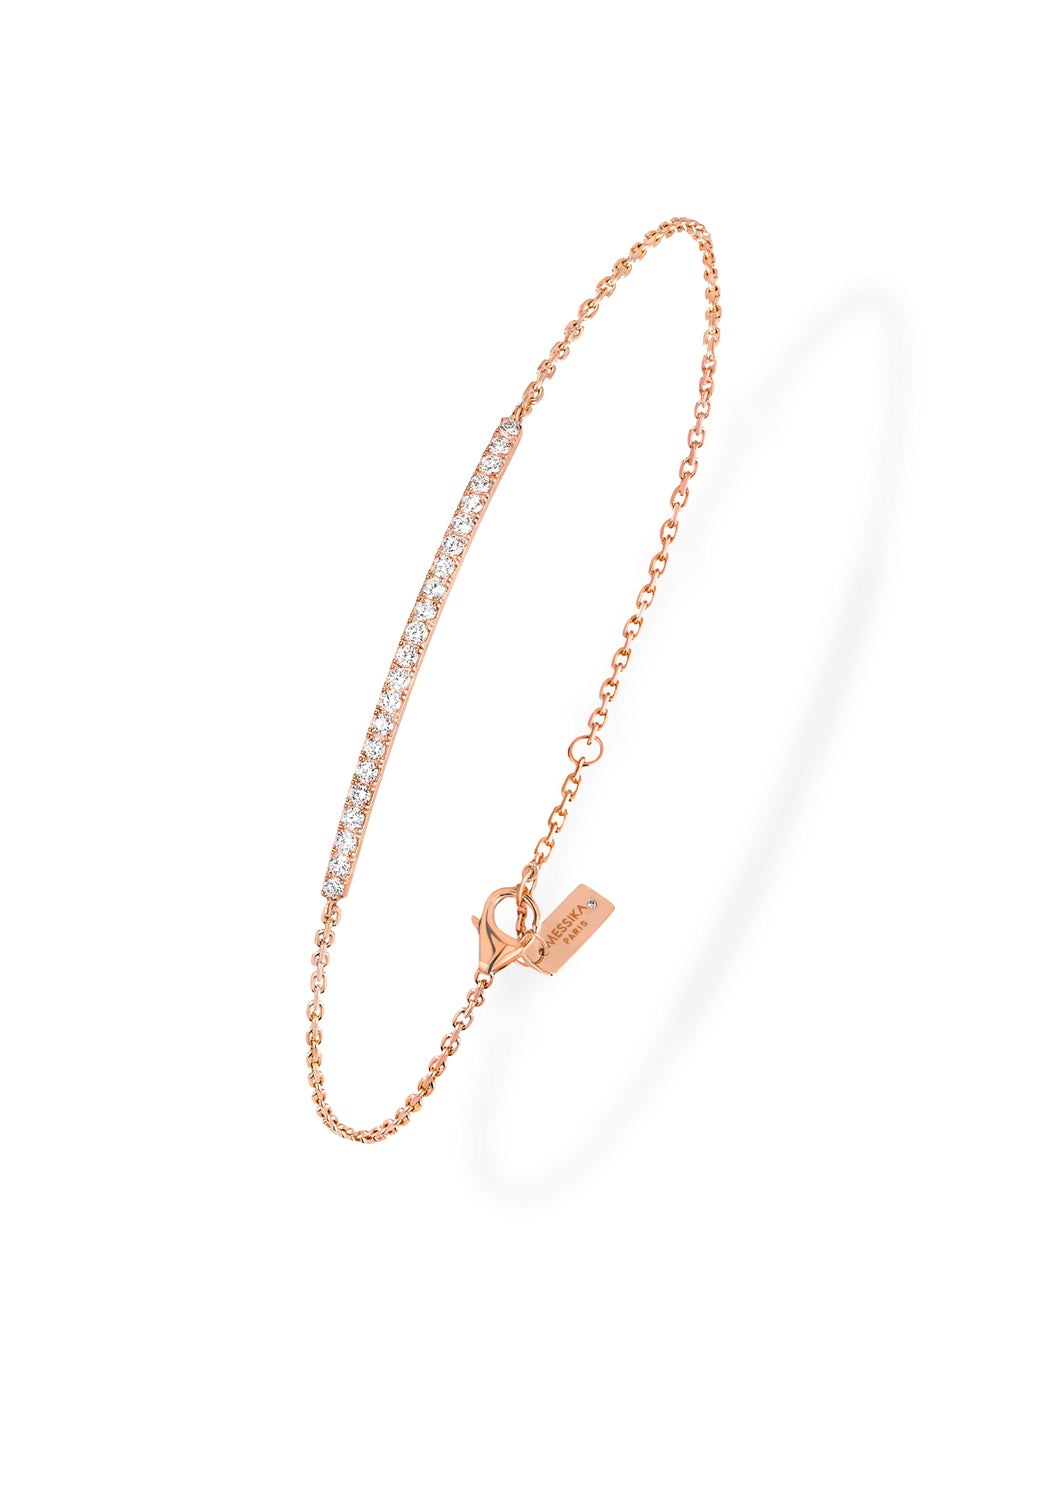 Messika Gatsby Bar Rose Gold Diamond Bracelet